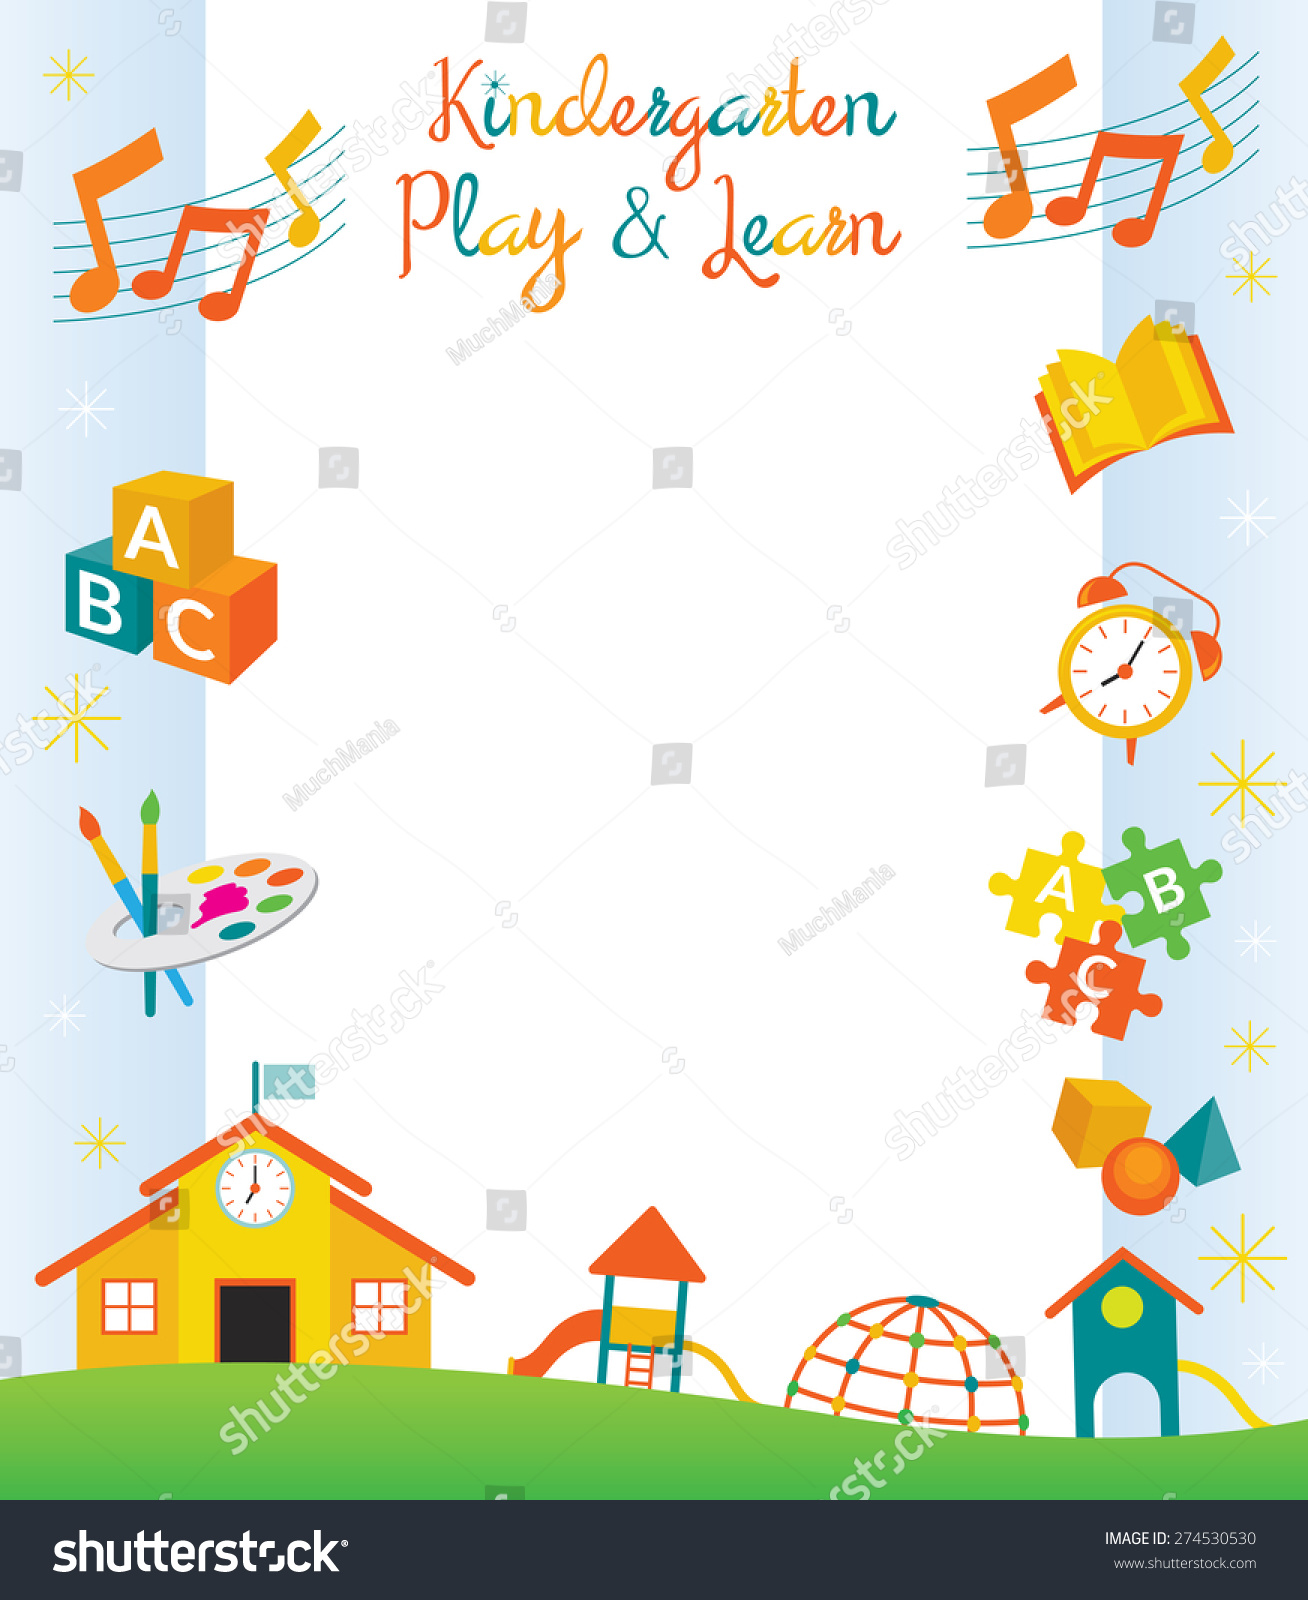 ... Kids Objects Border and Frame, Education, Learning and Study Concept